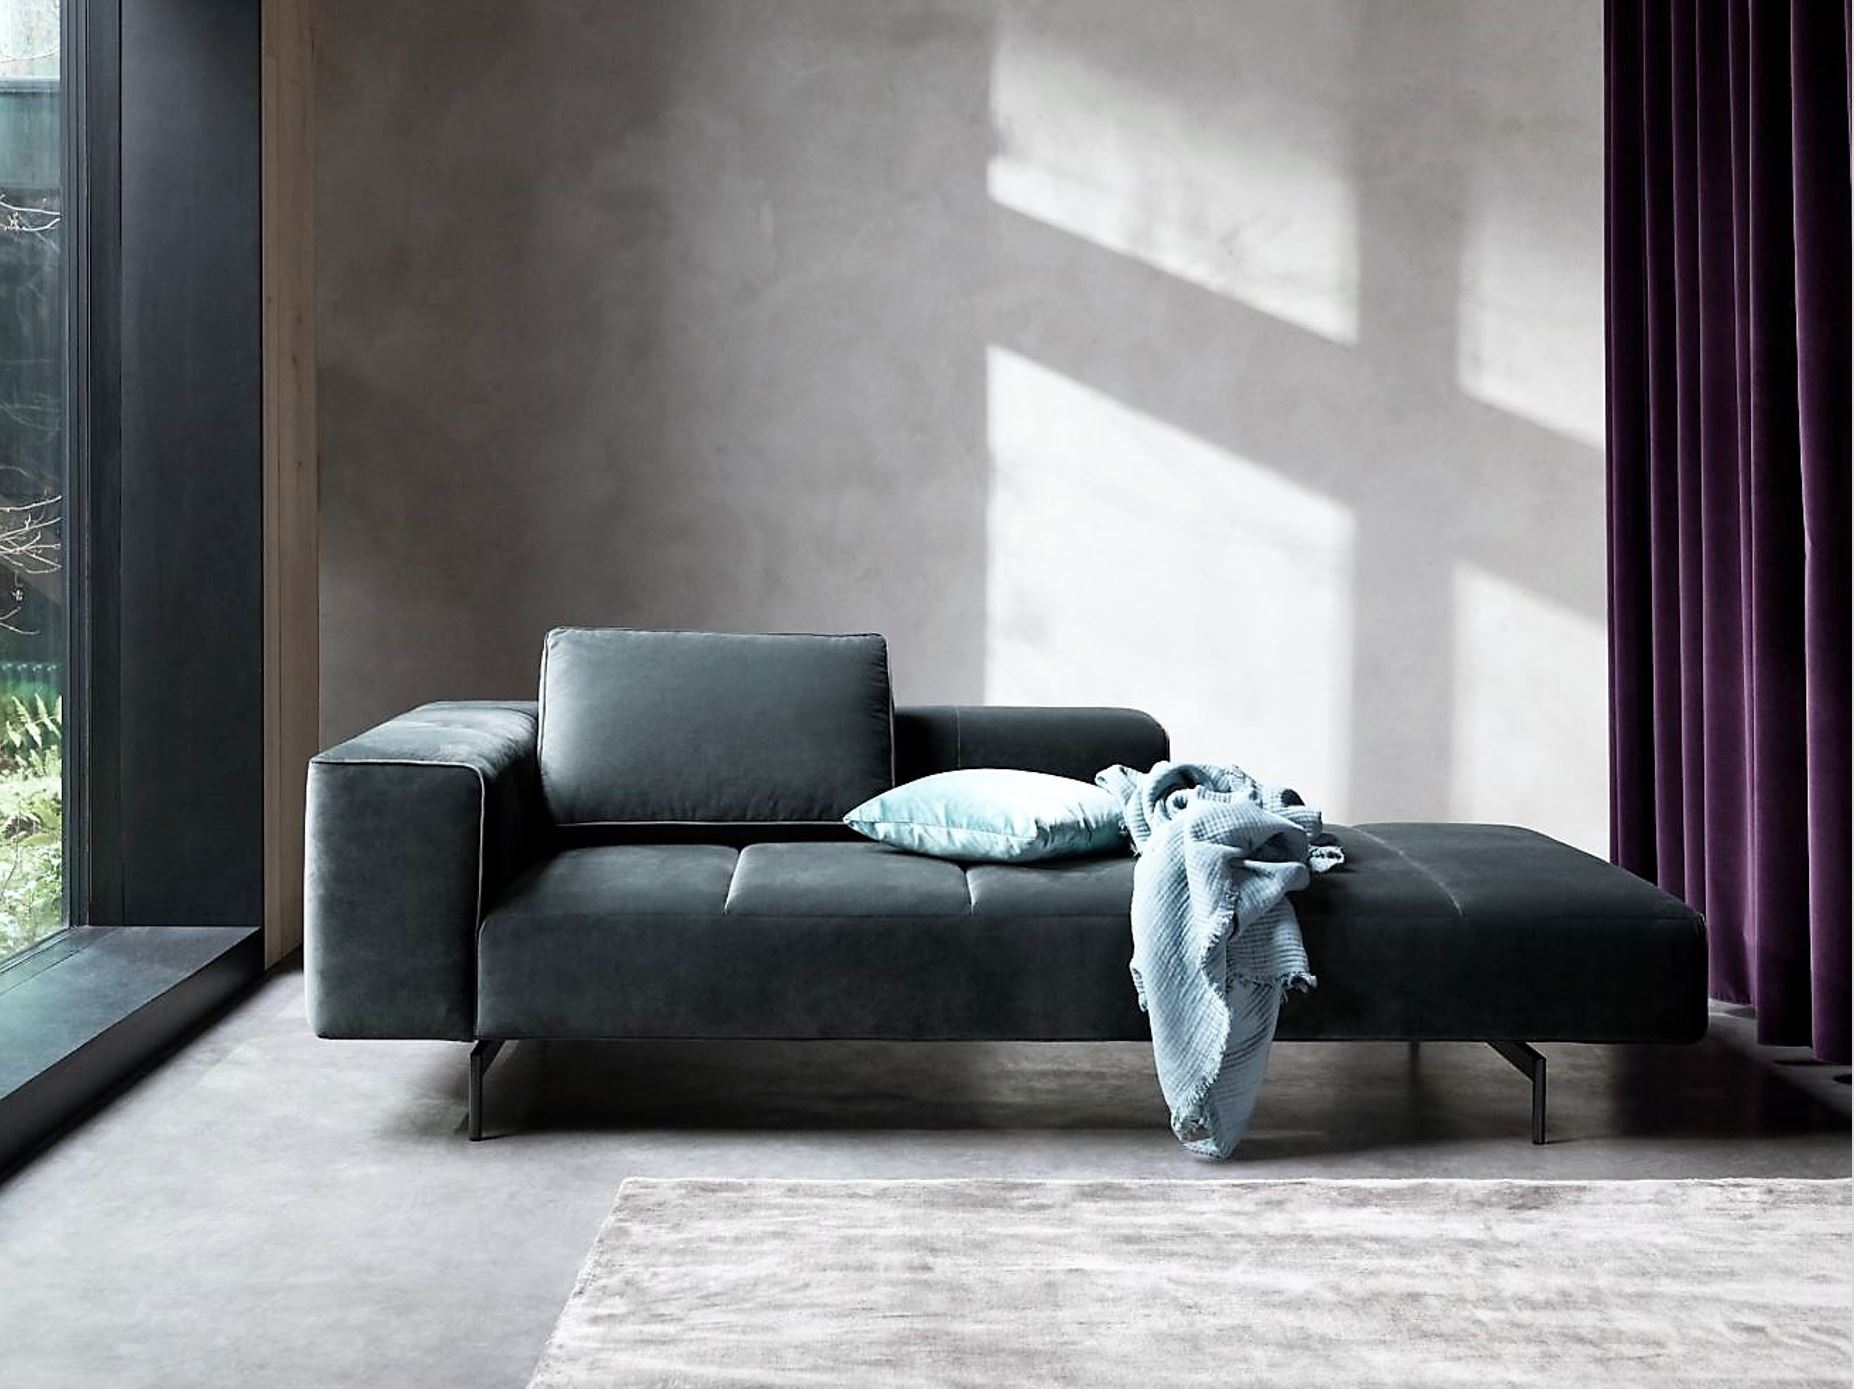 3 sofas amsterdam small table that slides under sofa by henrik pedersen boconcept experience